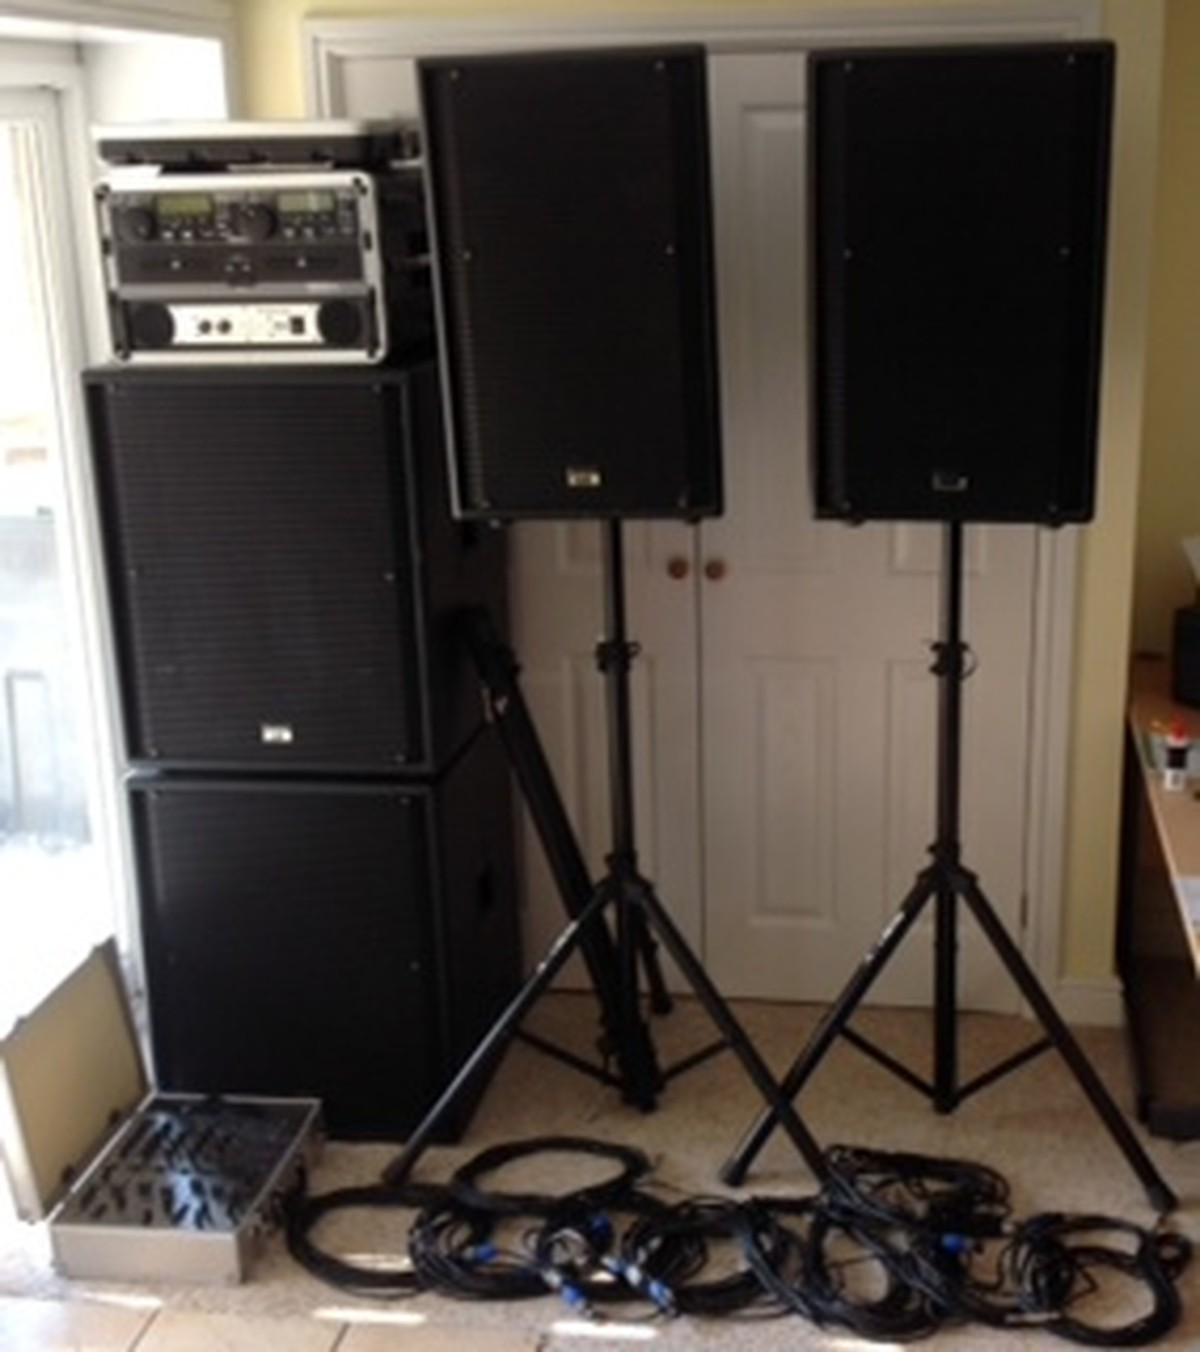 secondhand sound and lighting equipment pa systems pa dj music system scottish borders. Black Bedroom Furniture Sets. Home Design Ideas